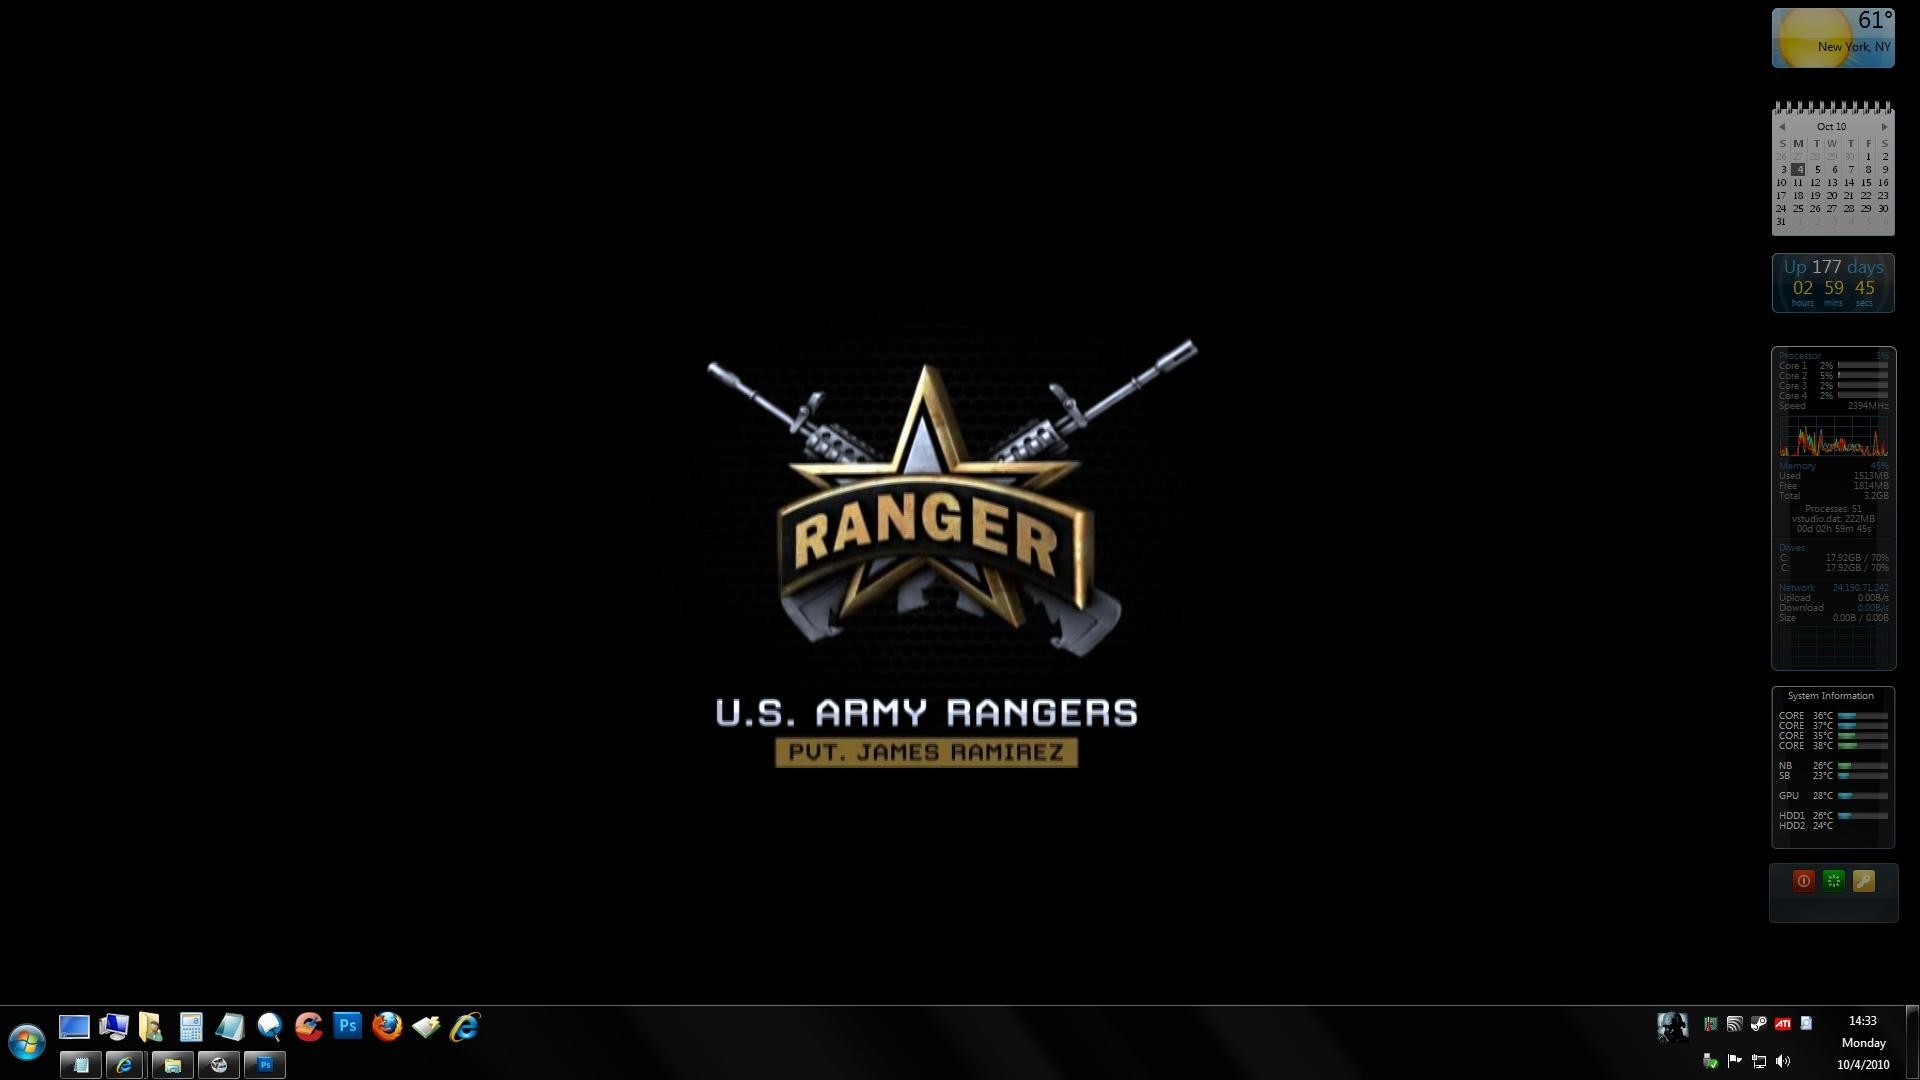 1920x1080 ranger wallpaper HD army logo wallpaper Group with 50 items .